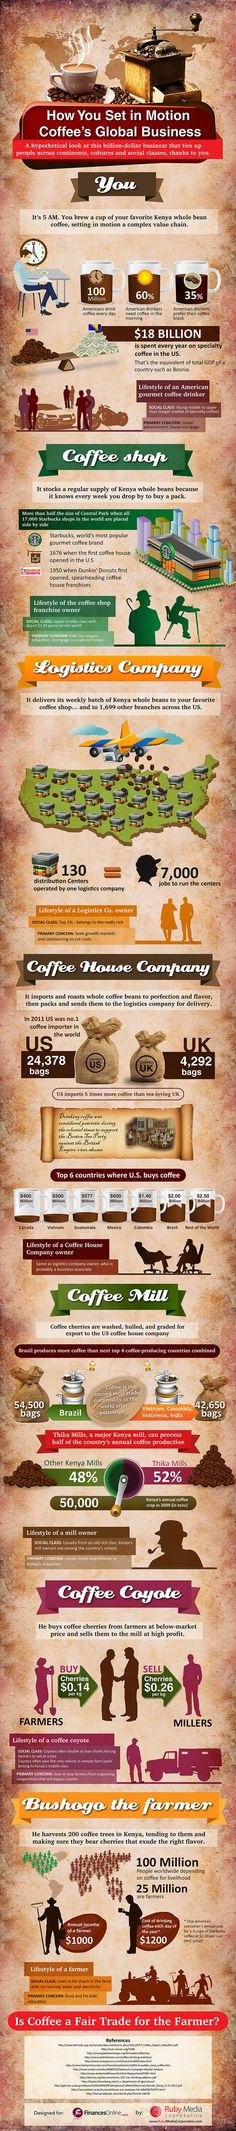 [Infographic] Here's How You Make Coffee a Billion-Dollar Business